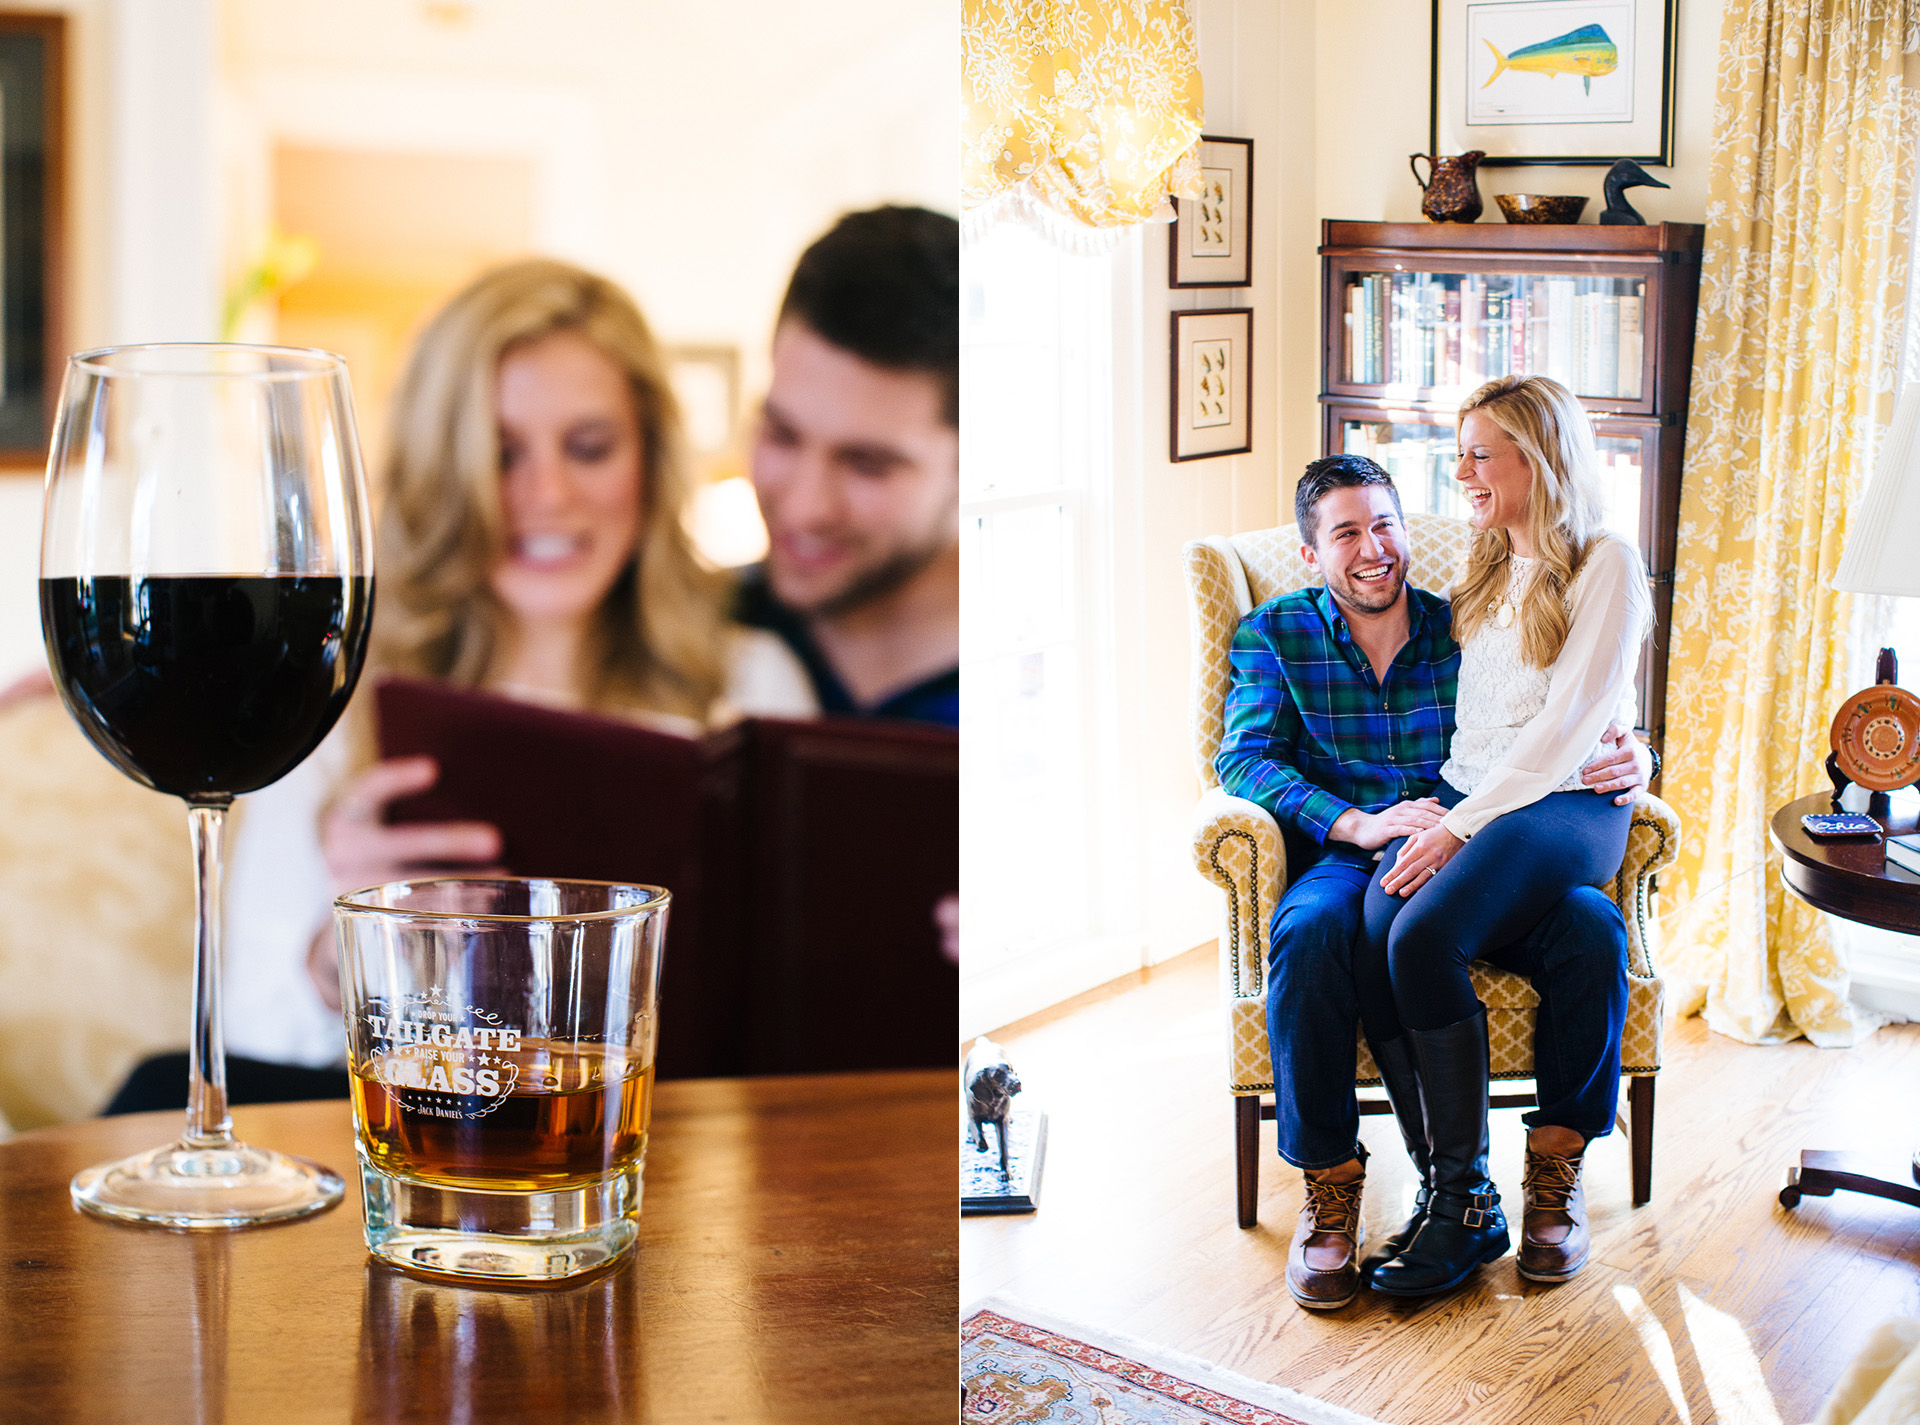 Winter Engagement Session in Bay Village - Too Much Awesomeness - Cleveland Wedding Photographer 05.jpg